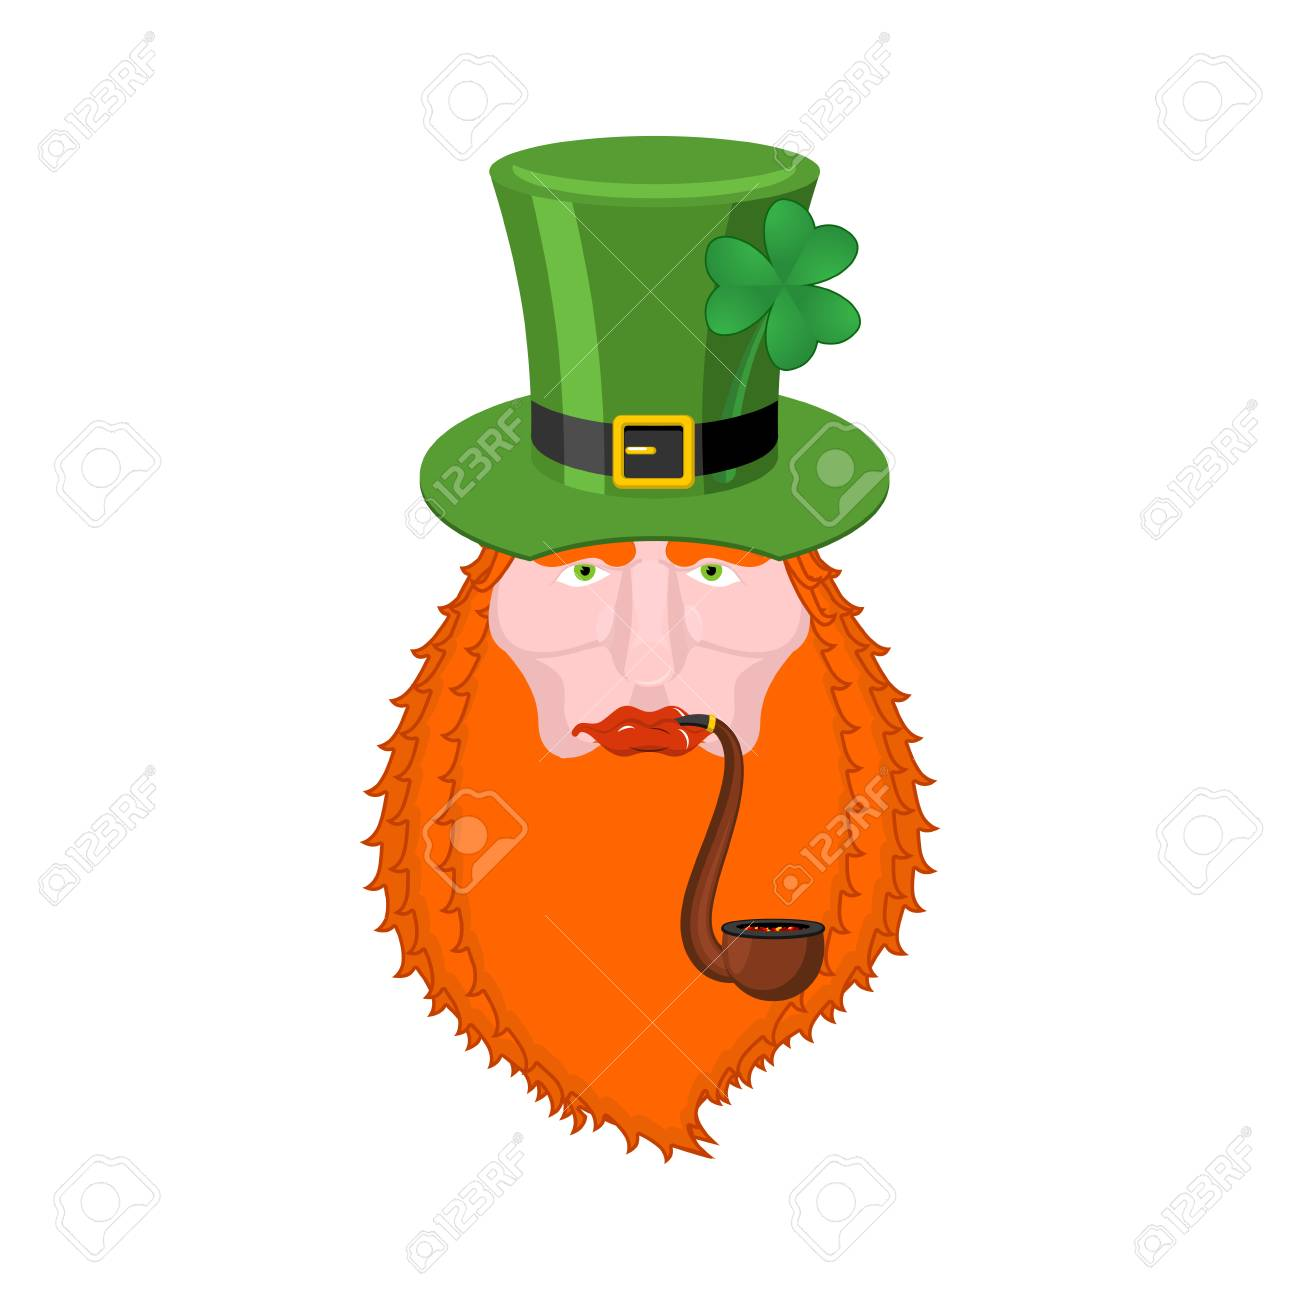 82c50dcce31 St. Patrick s Day Leprechaun with red beard and pipe. Green hat. Magic Dwarf